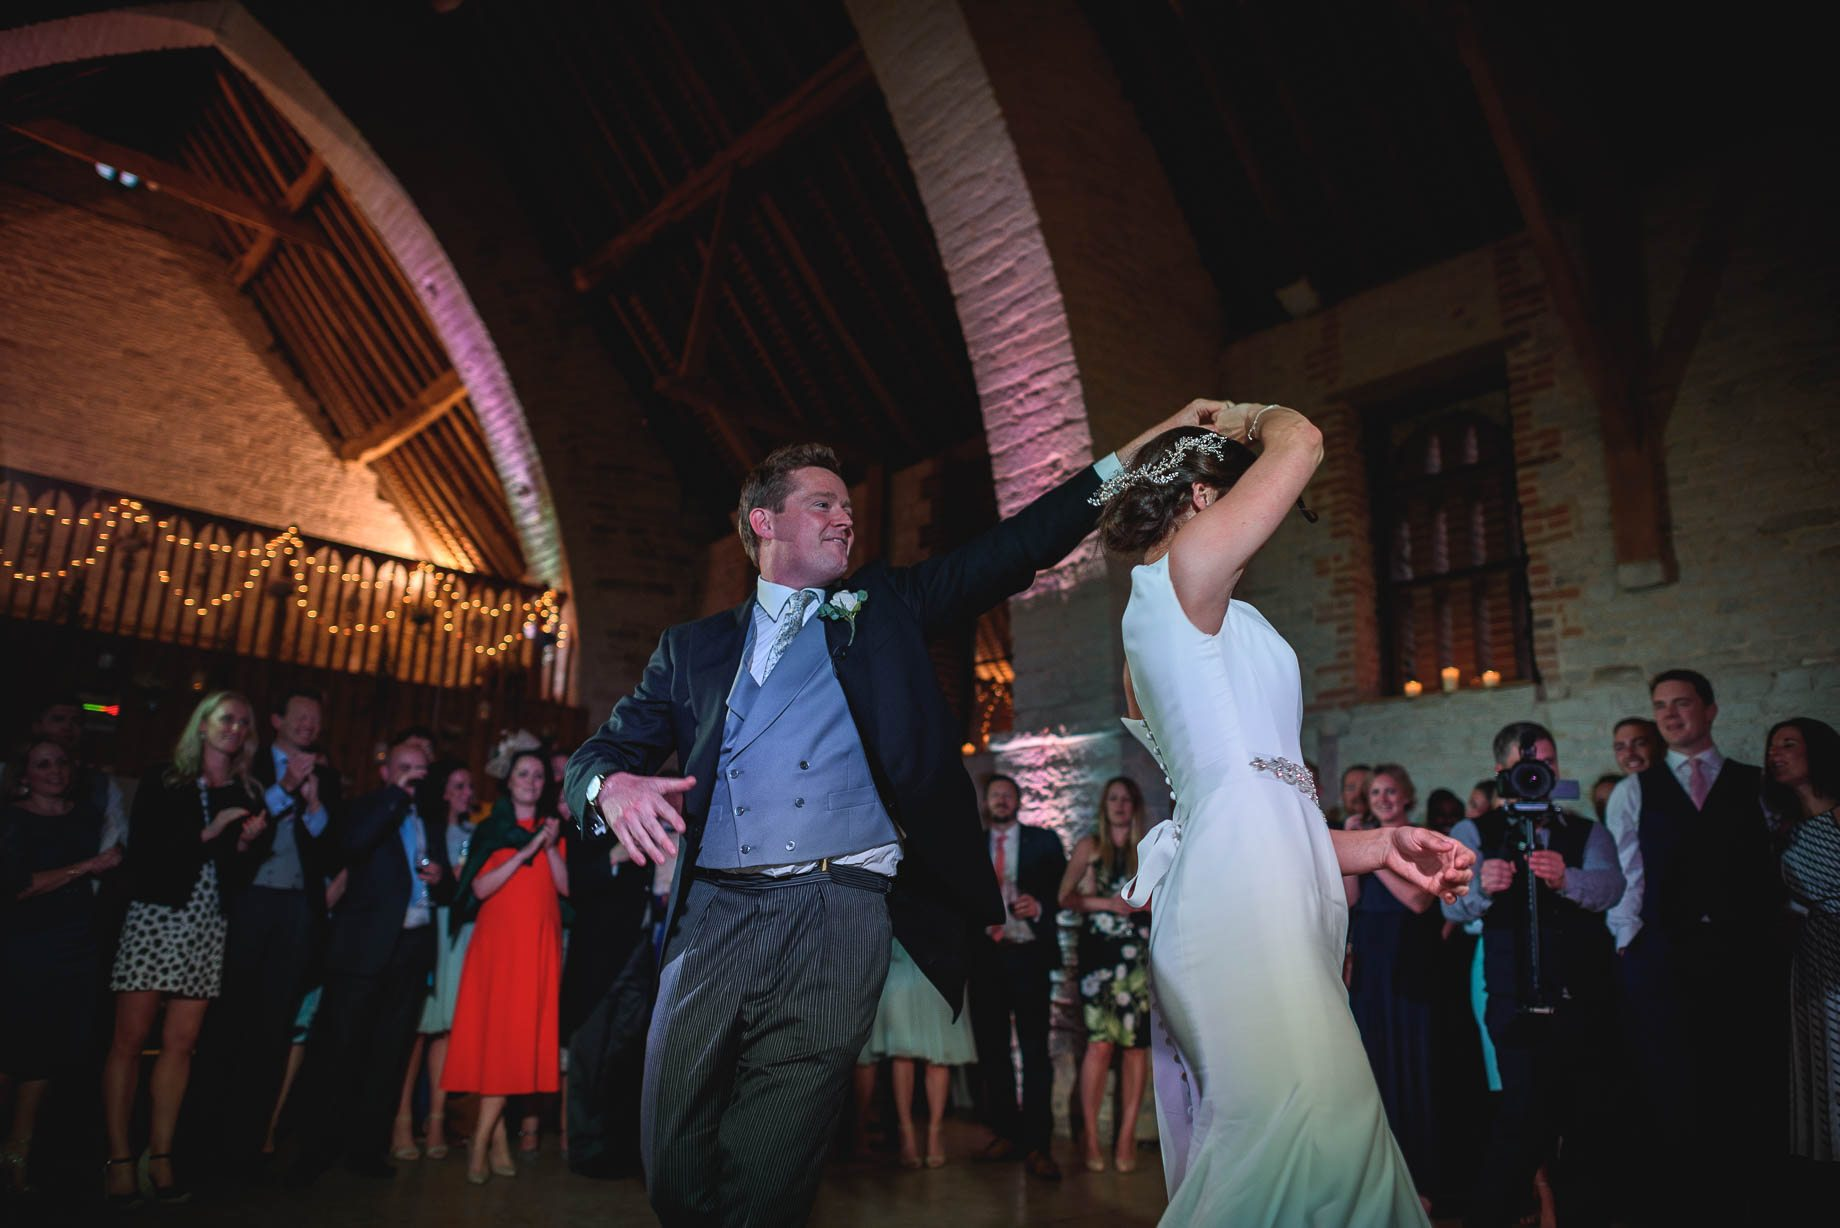 Tithe Barn wedding photography - Jayme and David (176 of 189)